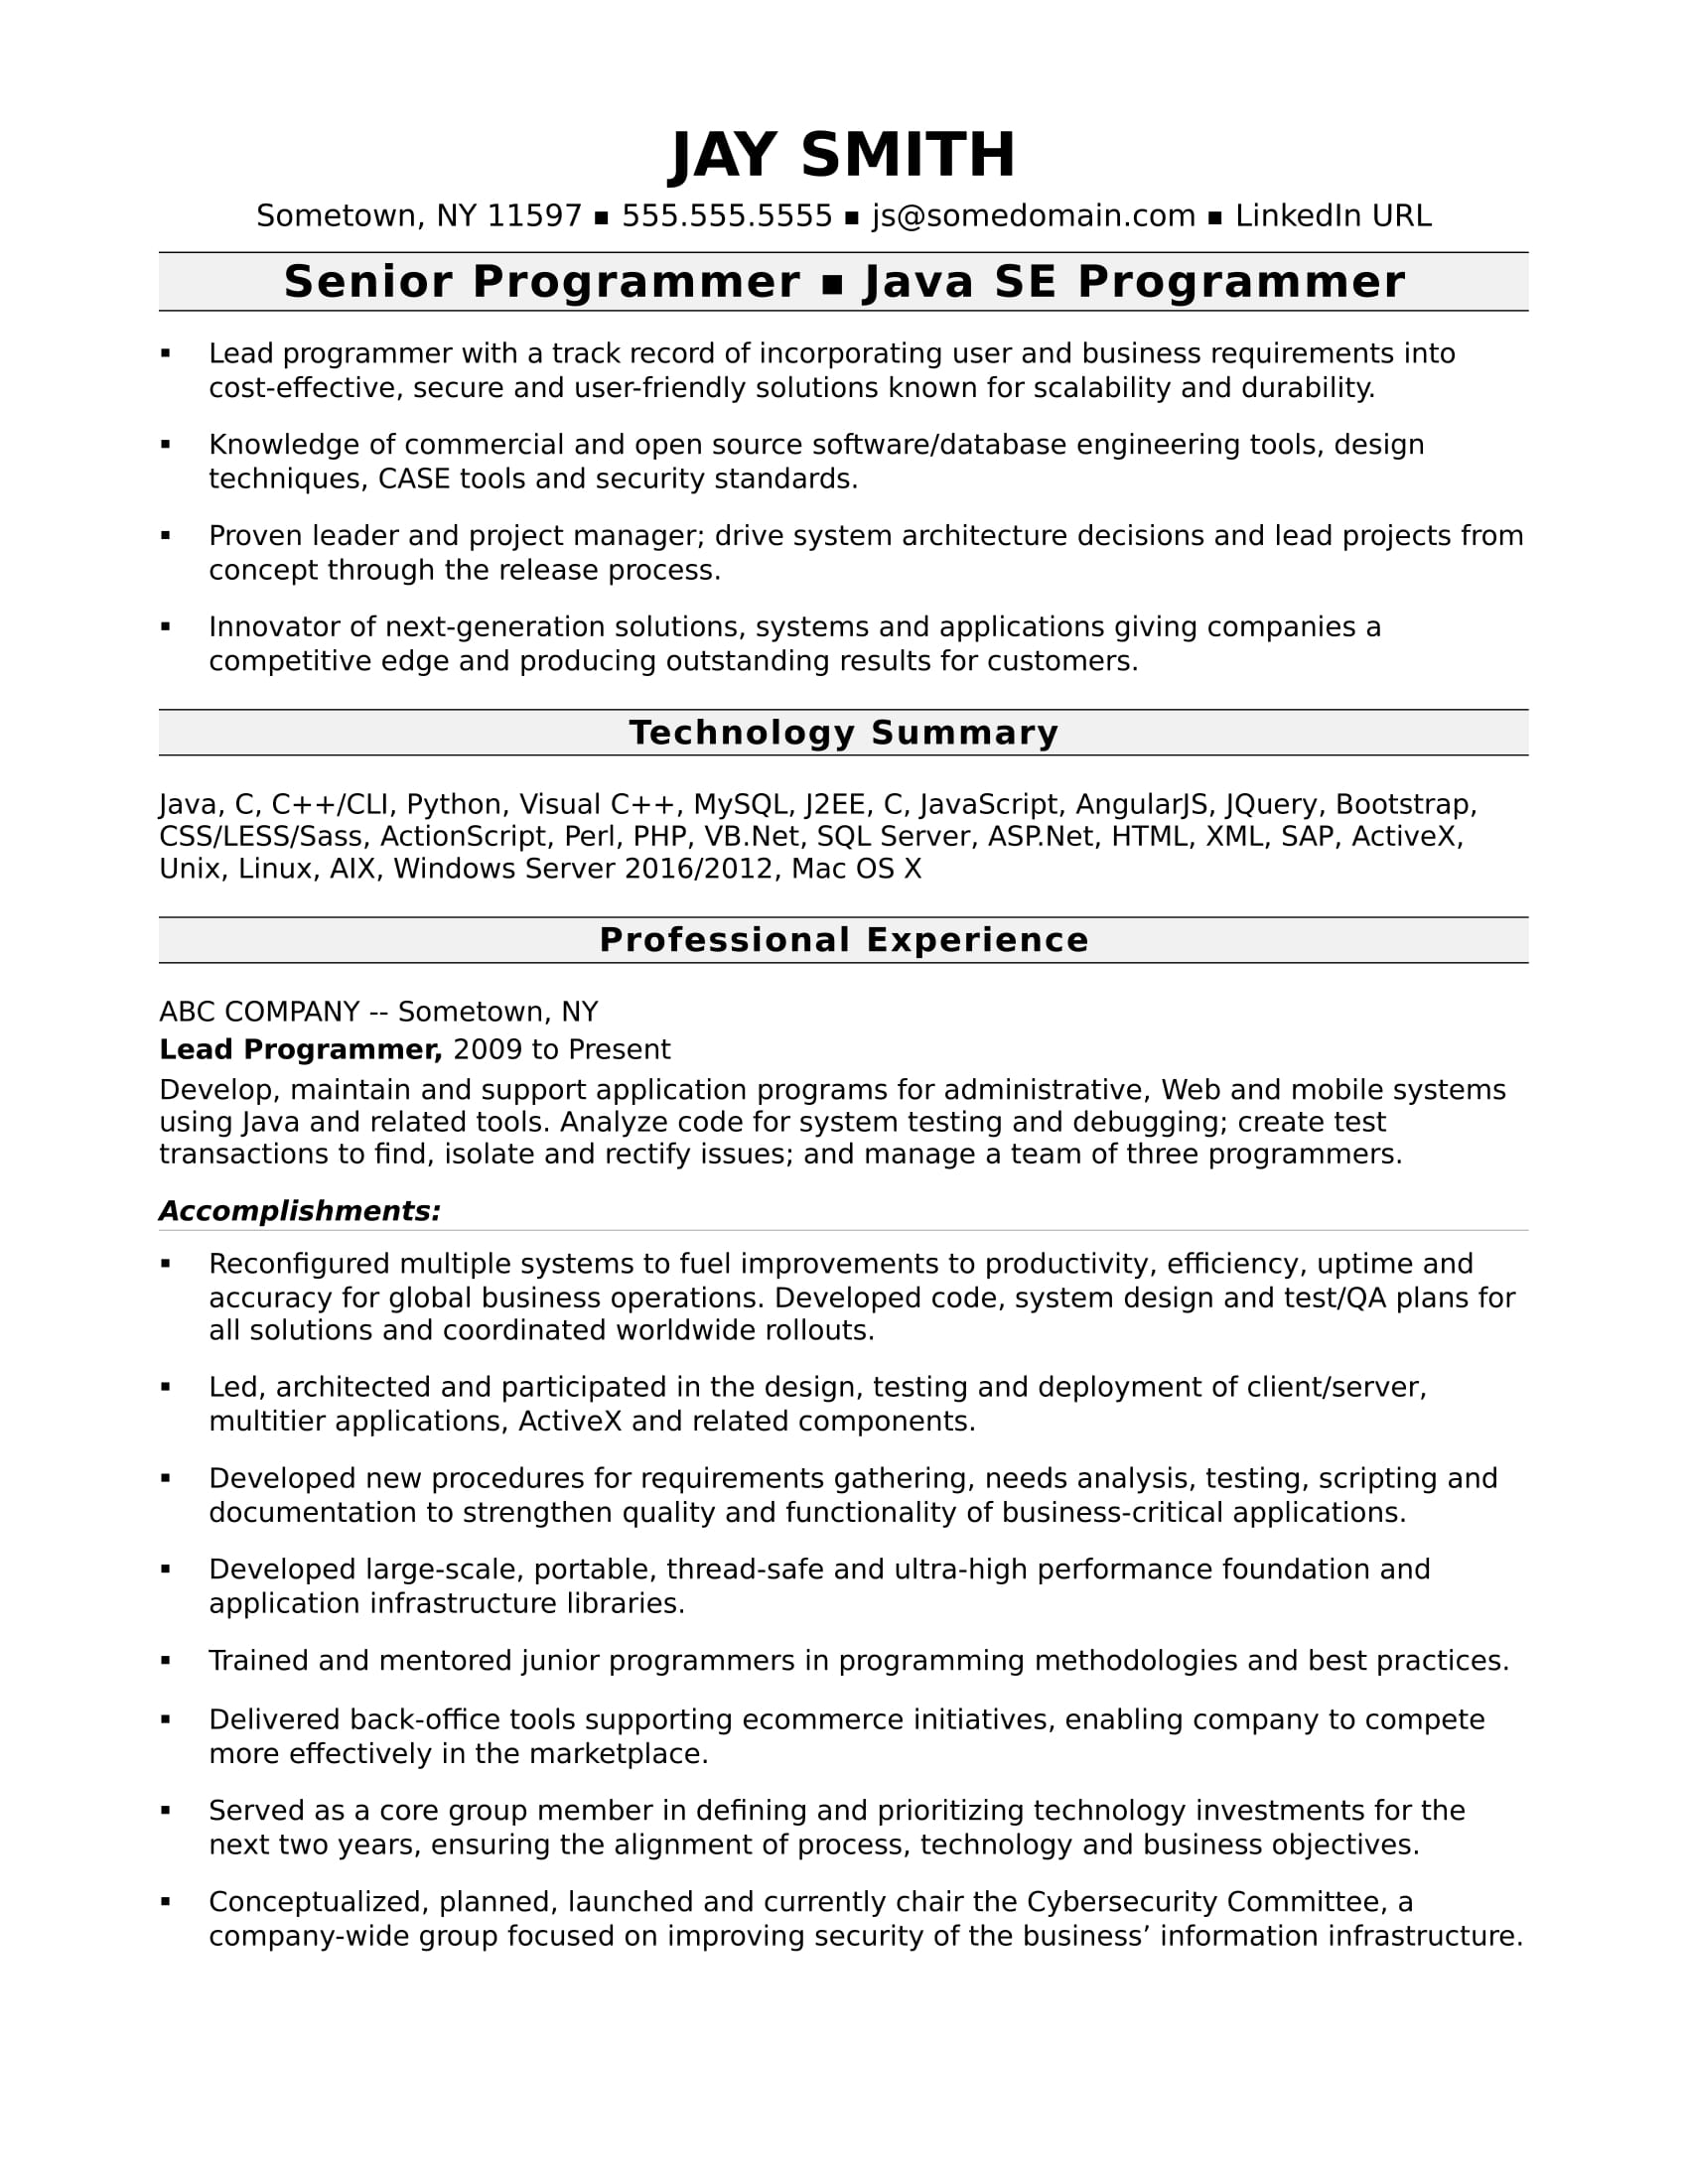 programmer resume template monster angularjs points computer experienced pathsource Resume Angularjs 2 Resume Points